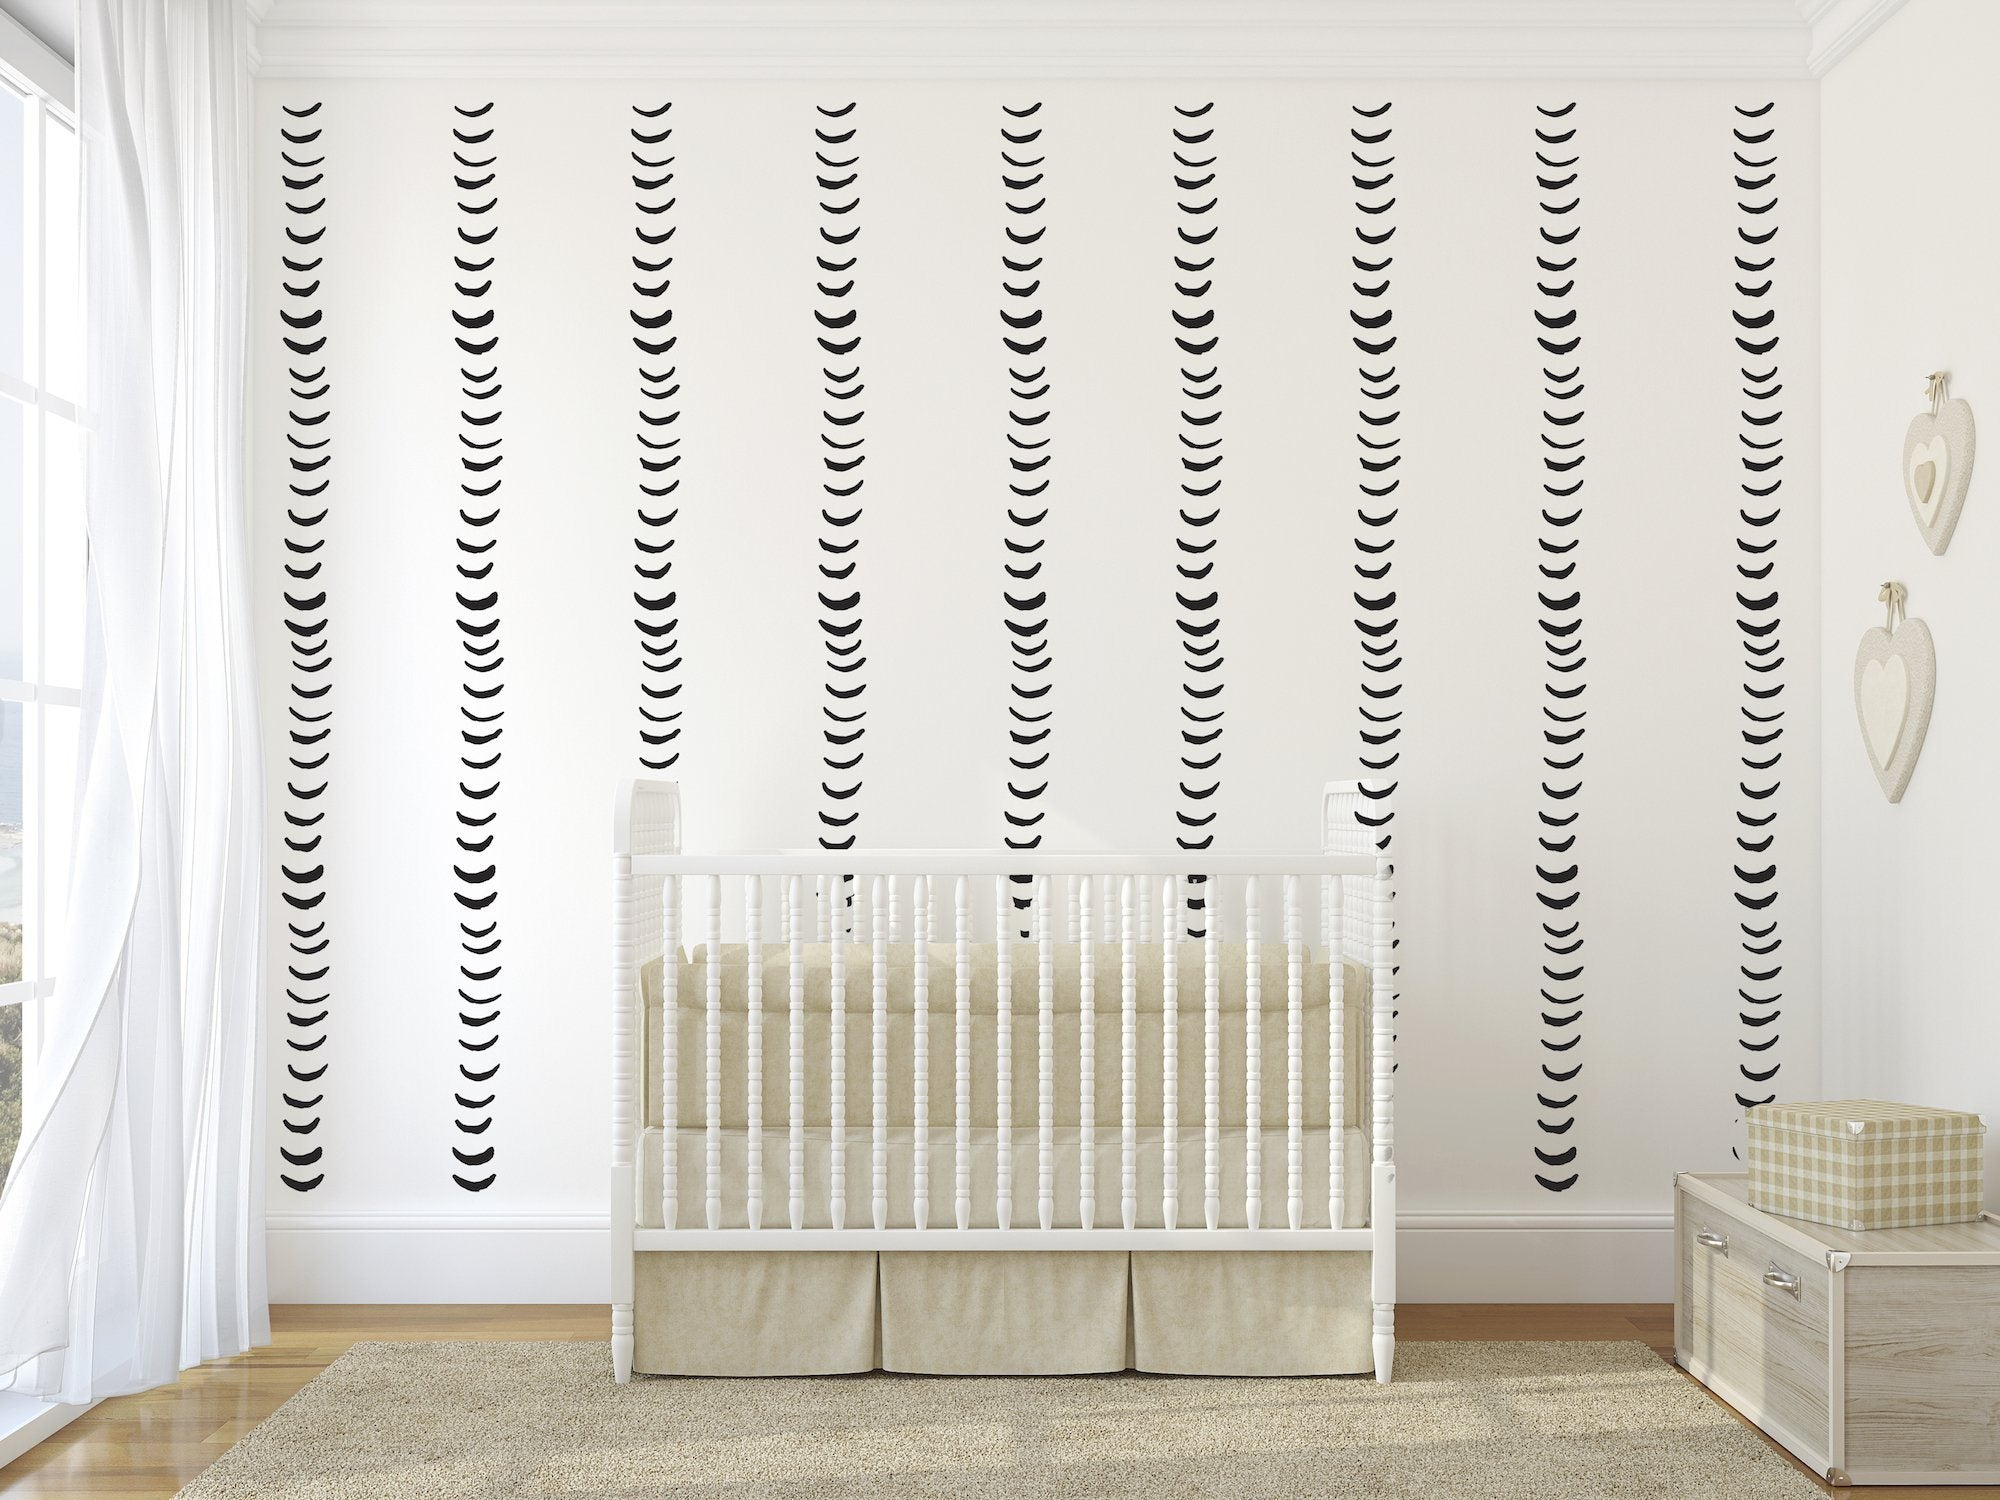 Half Moons Wall Decals - Multiple Colors - Project Nursery